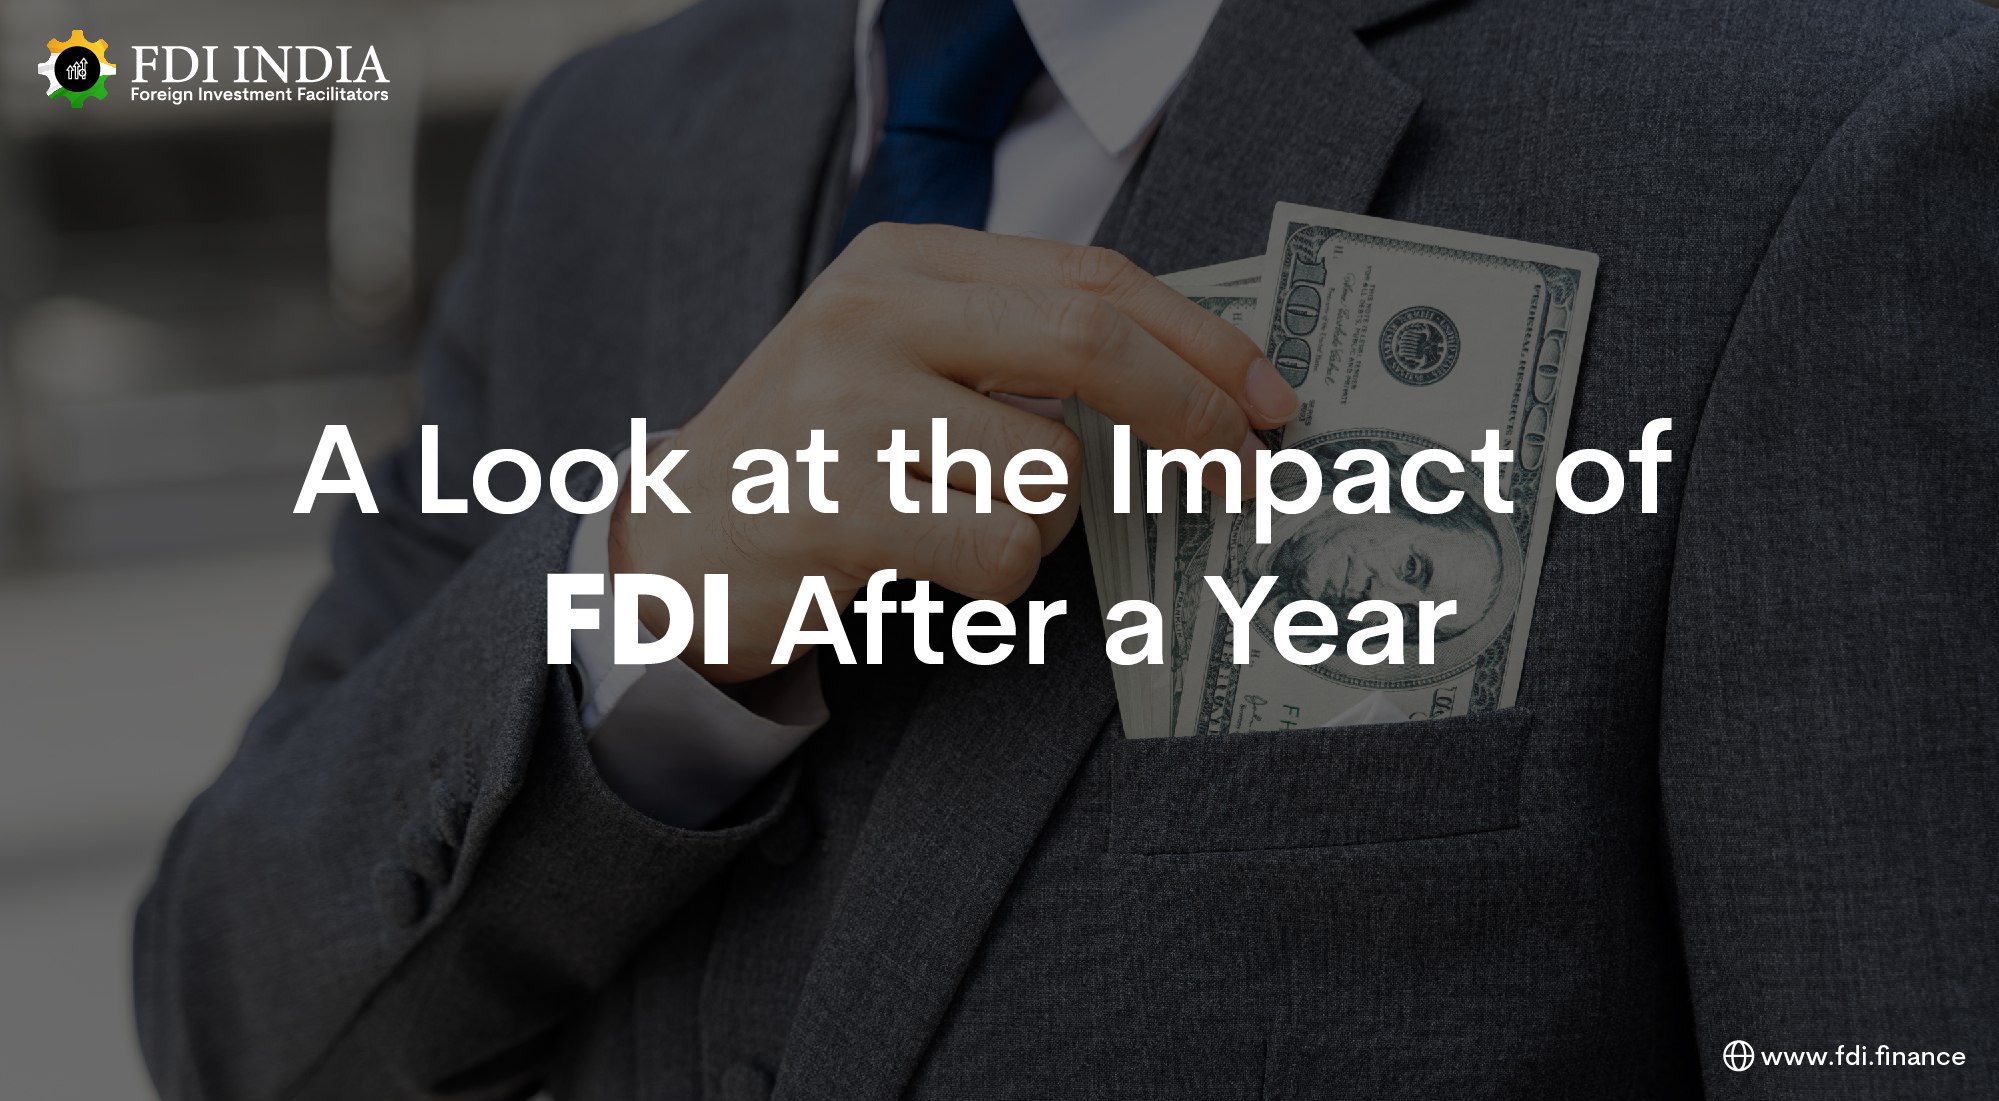 A Look at the Impact of FDI After a Year